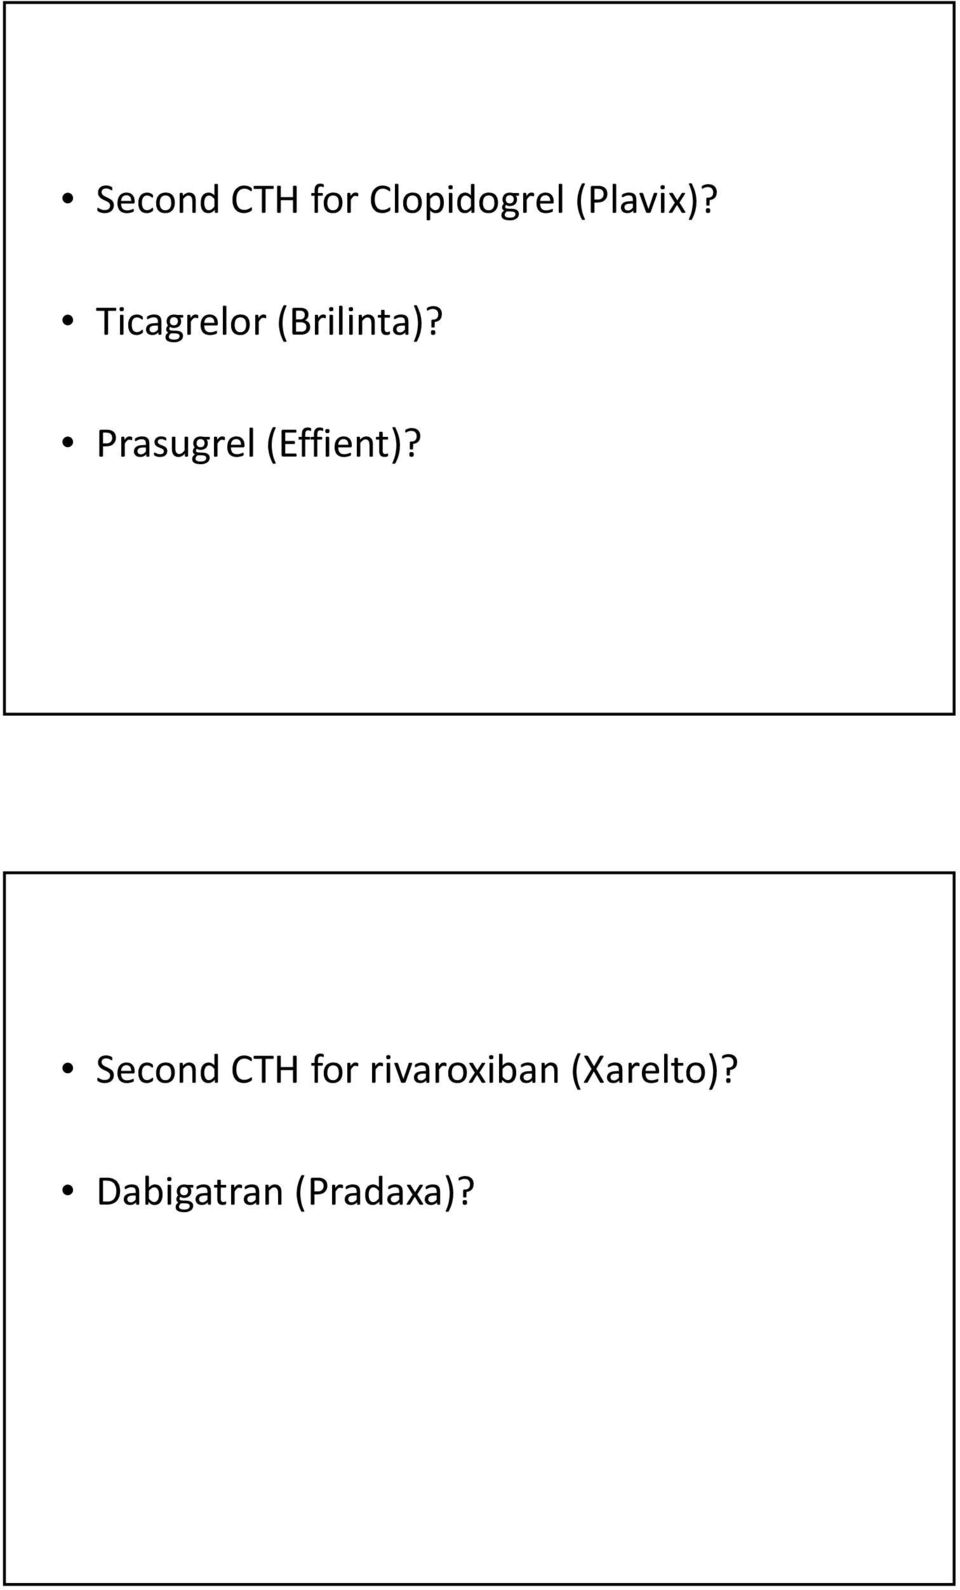 Prasugrel (Effient)?